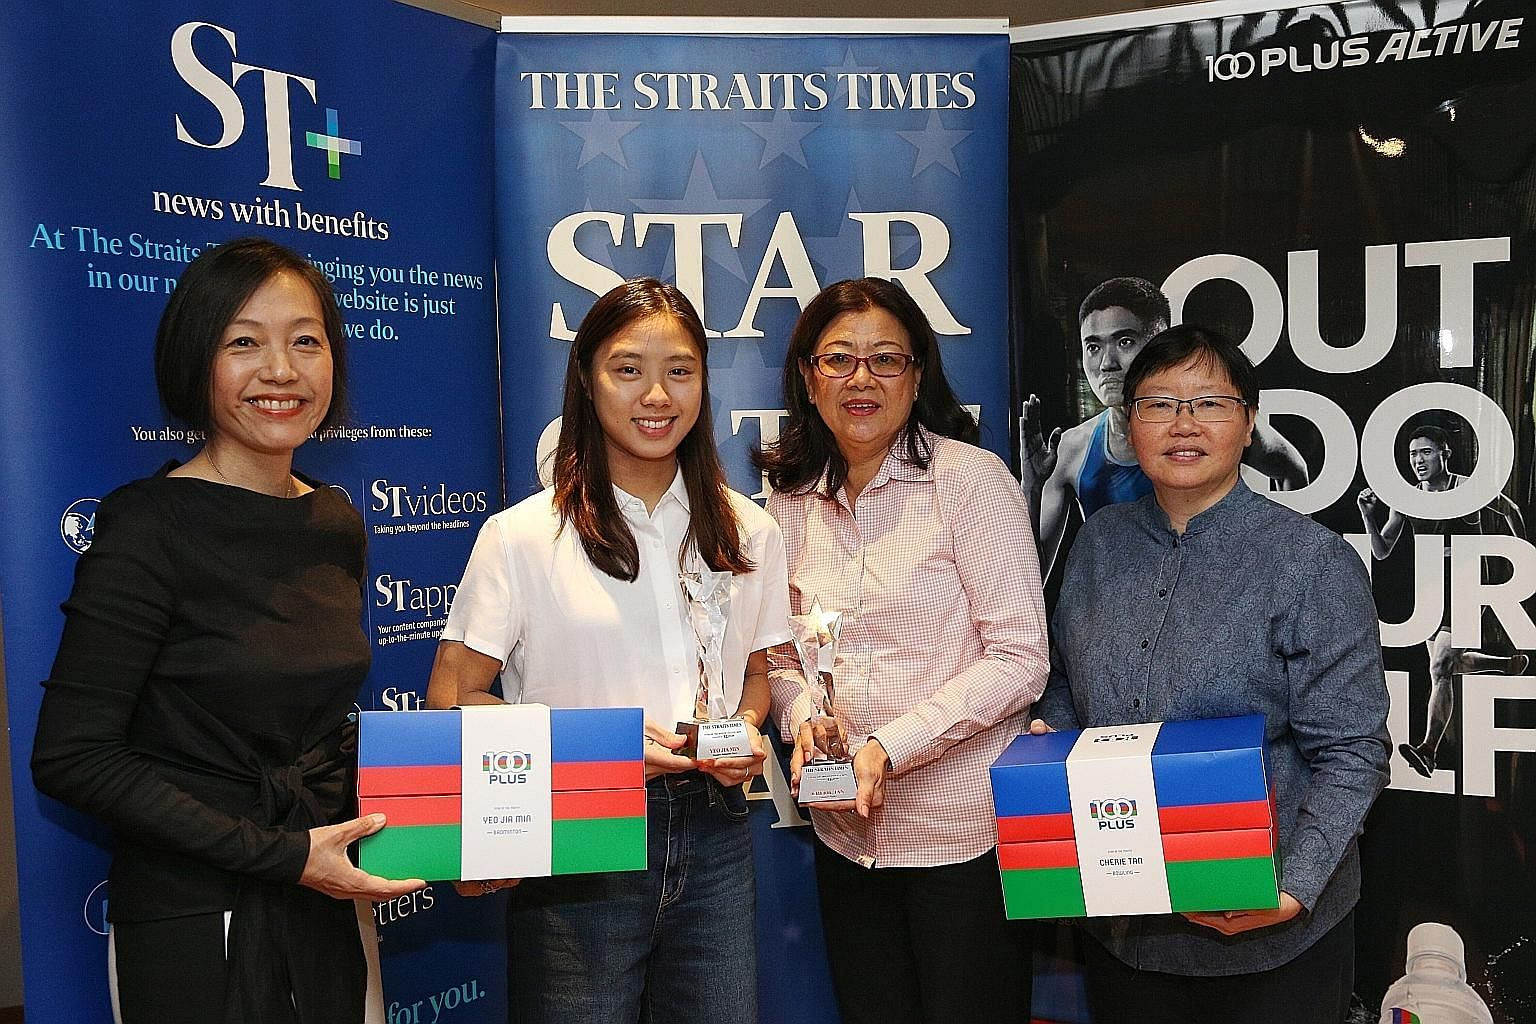 The Straits Times Star of the Month Yeo Jia Min (second from left), with Josephine Tan, mother of joint-award winner Cherie Tan, ST Sports editor Lee Yulin (right) and F&N Foods managing director Jennifer See (left). ST PHOTO: JASON QUAH